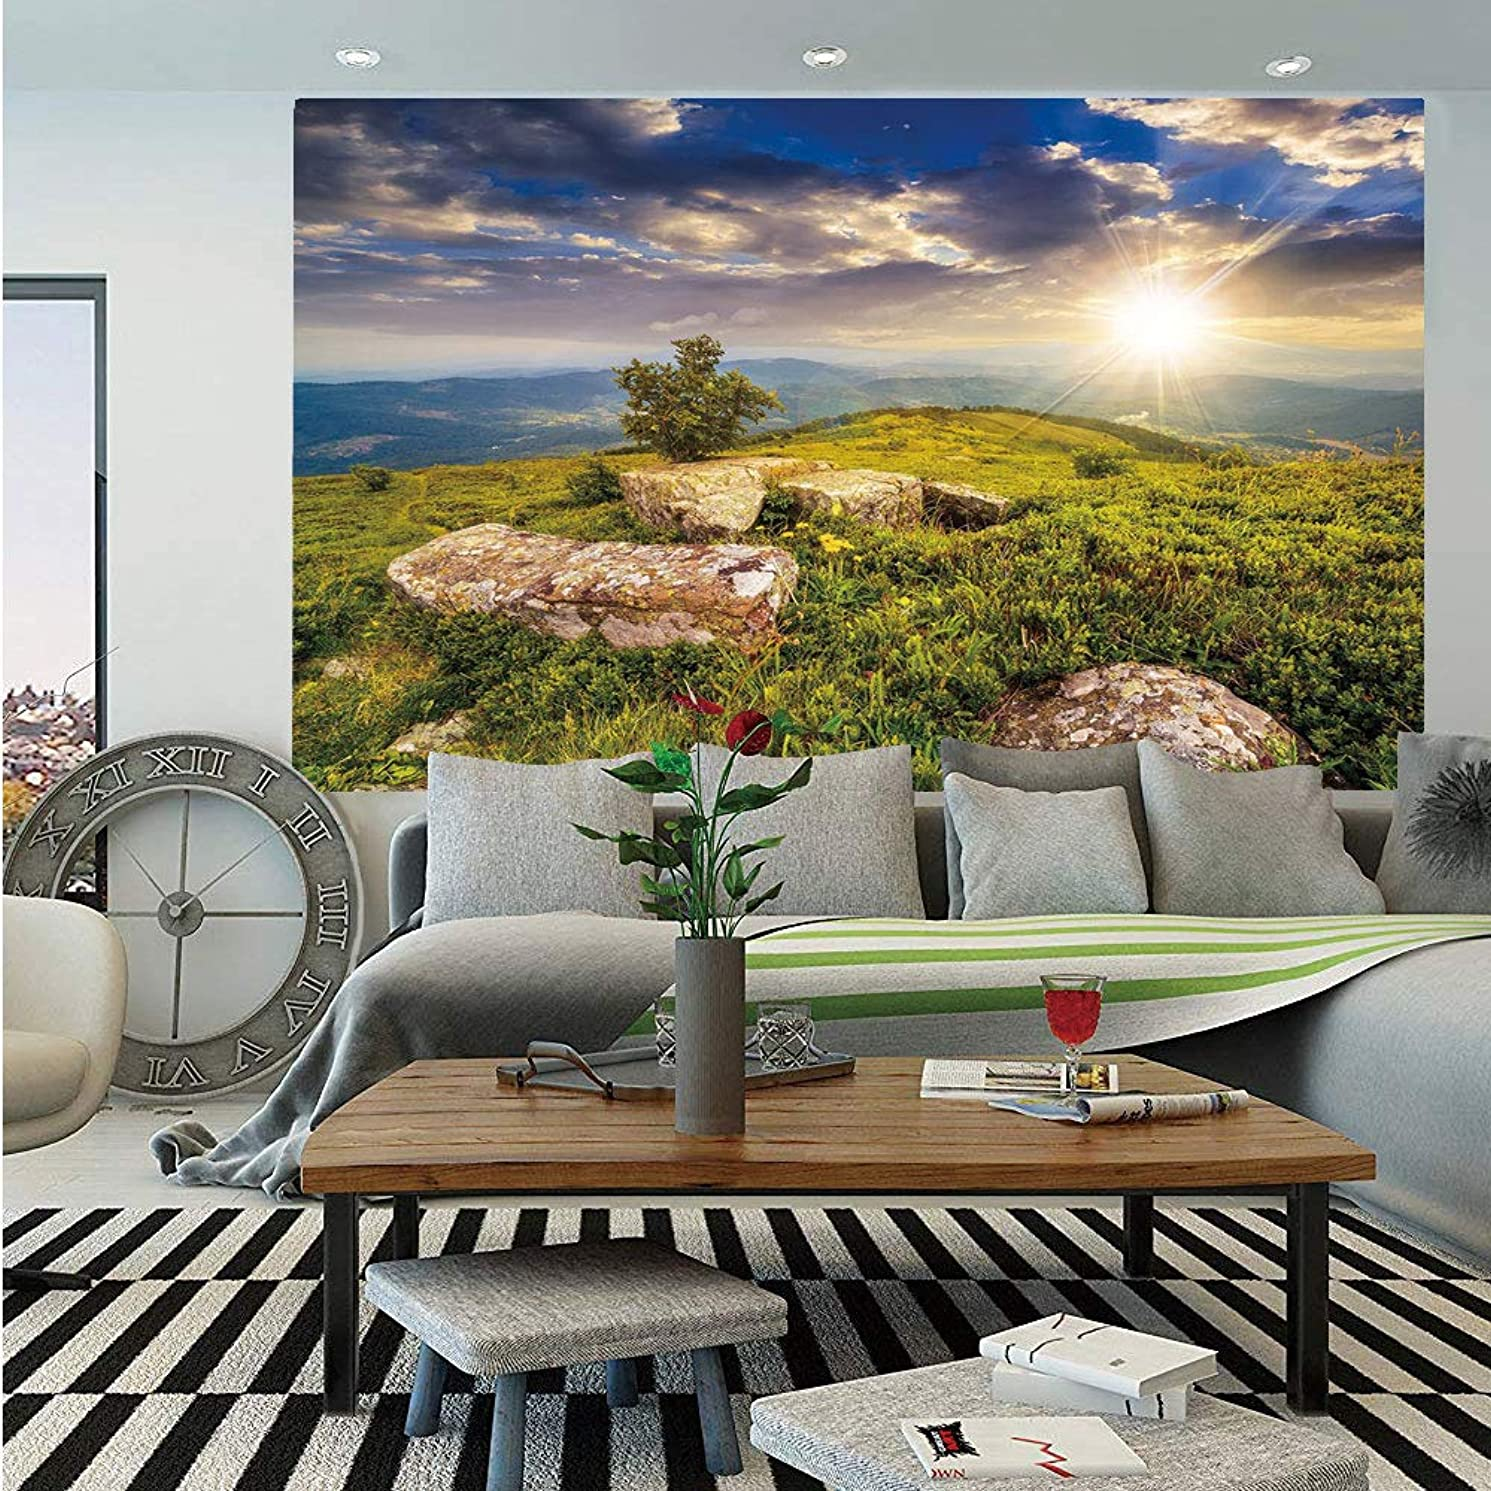 Mountain Removable Wall Mural,Small Tree Behind Boulders Hillside Grass Greenery Meadow Scenic Dramatic,Self-Adhesive Large Wallpaper for Home Decor 66x96 inches,Green Yellow Blue